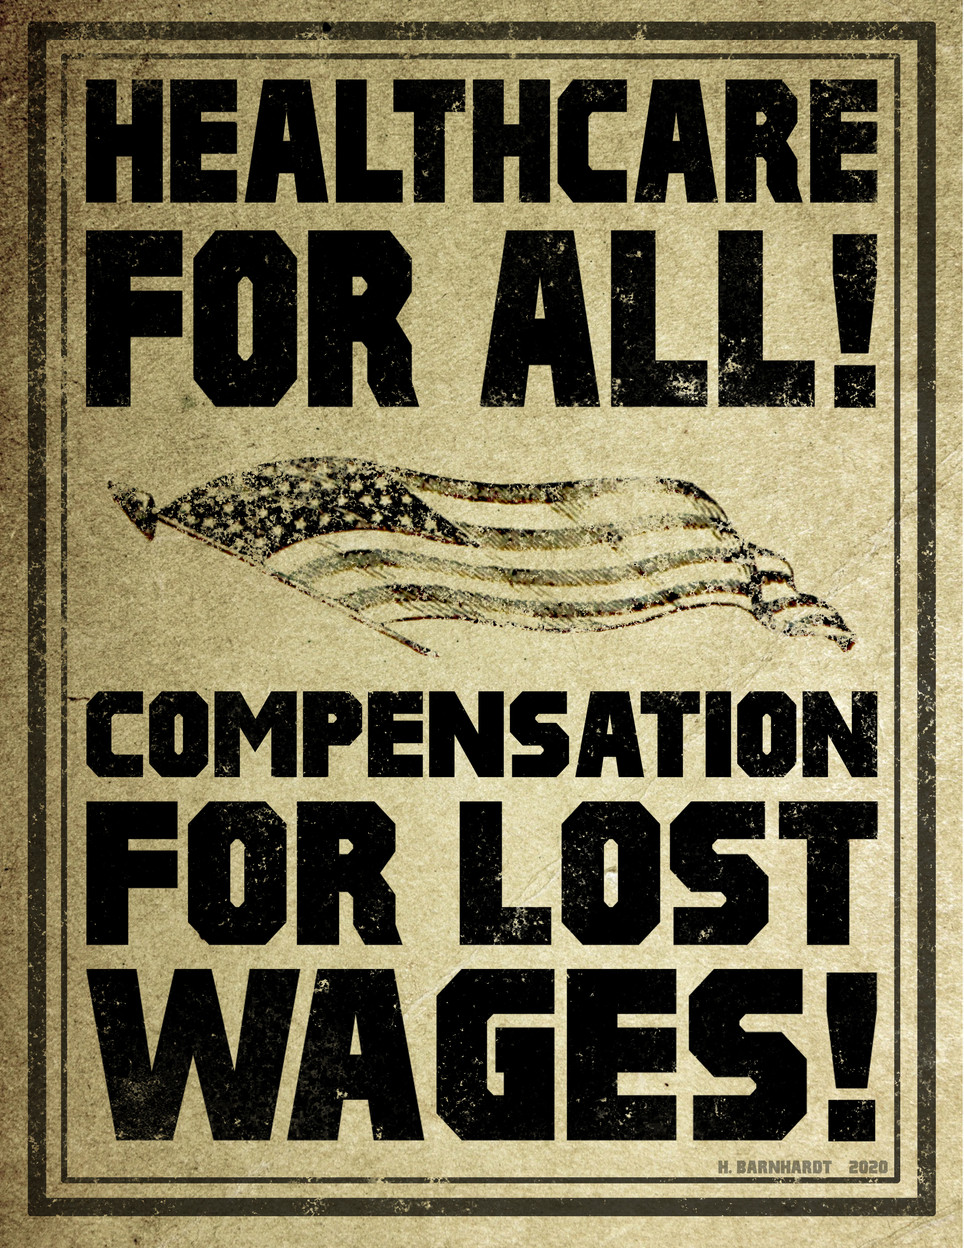 Demand Compensation for Lost Wages!